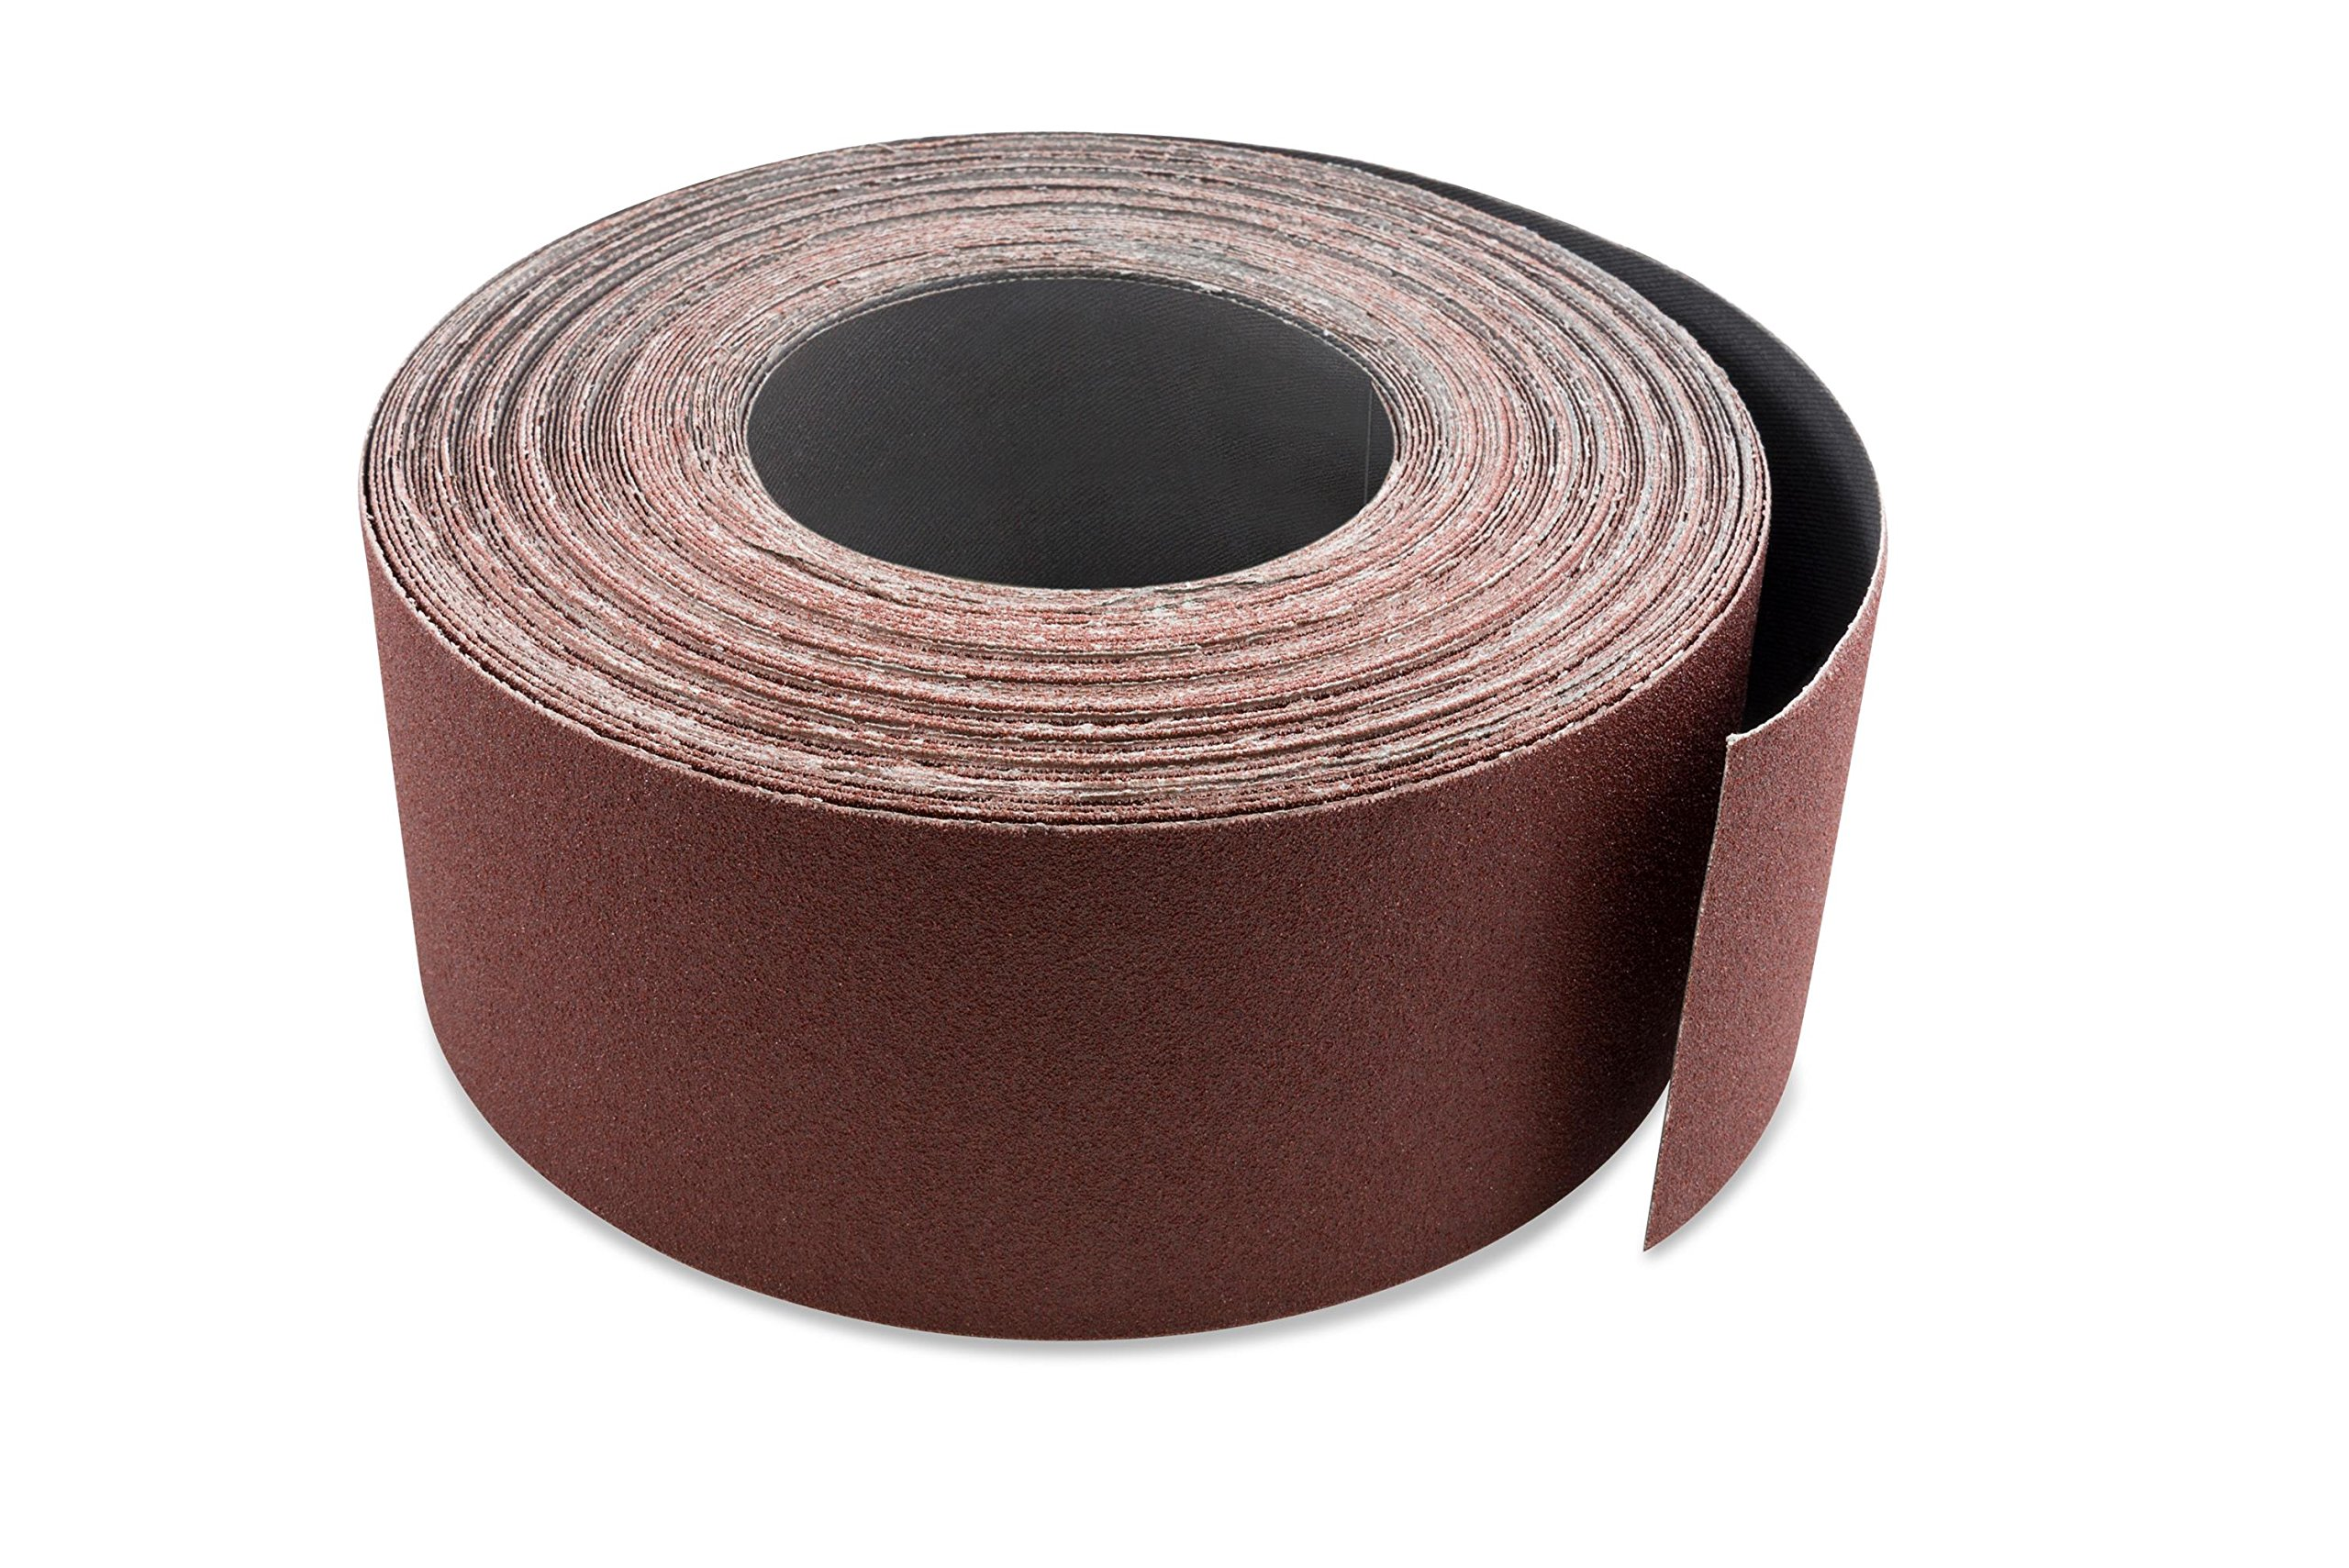 3 Inch X 70 FT Aluminum Oxide Ready-to-Cut Cloth Sanding Roll for Drum Sanders by Red Label Abrasives